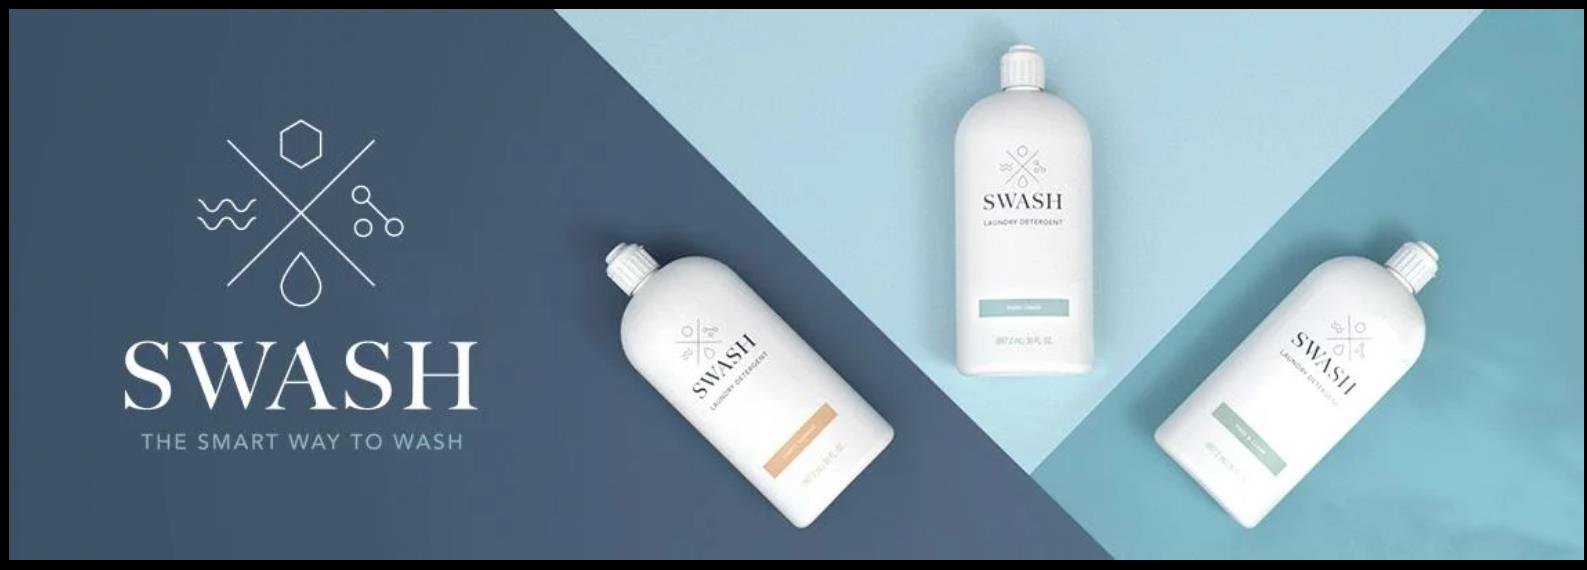 Swash Laundry Detergent - The Smart Way to Wash